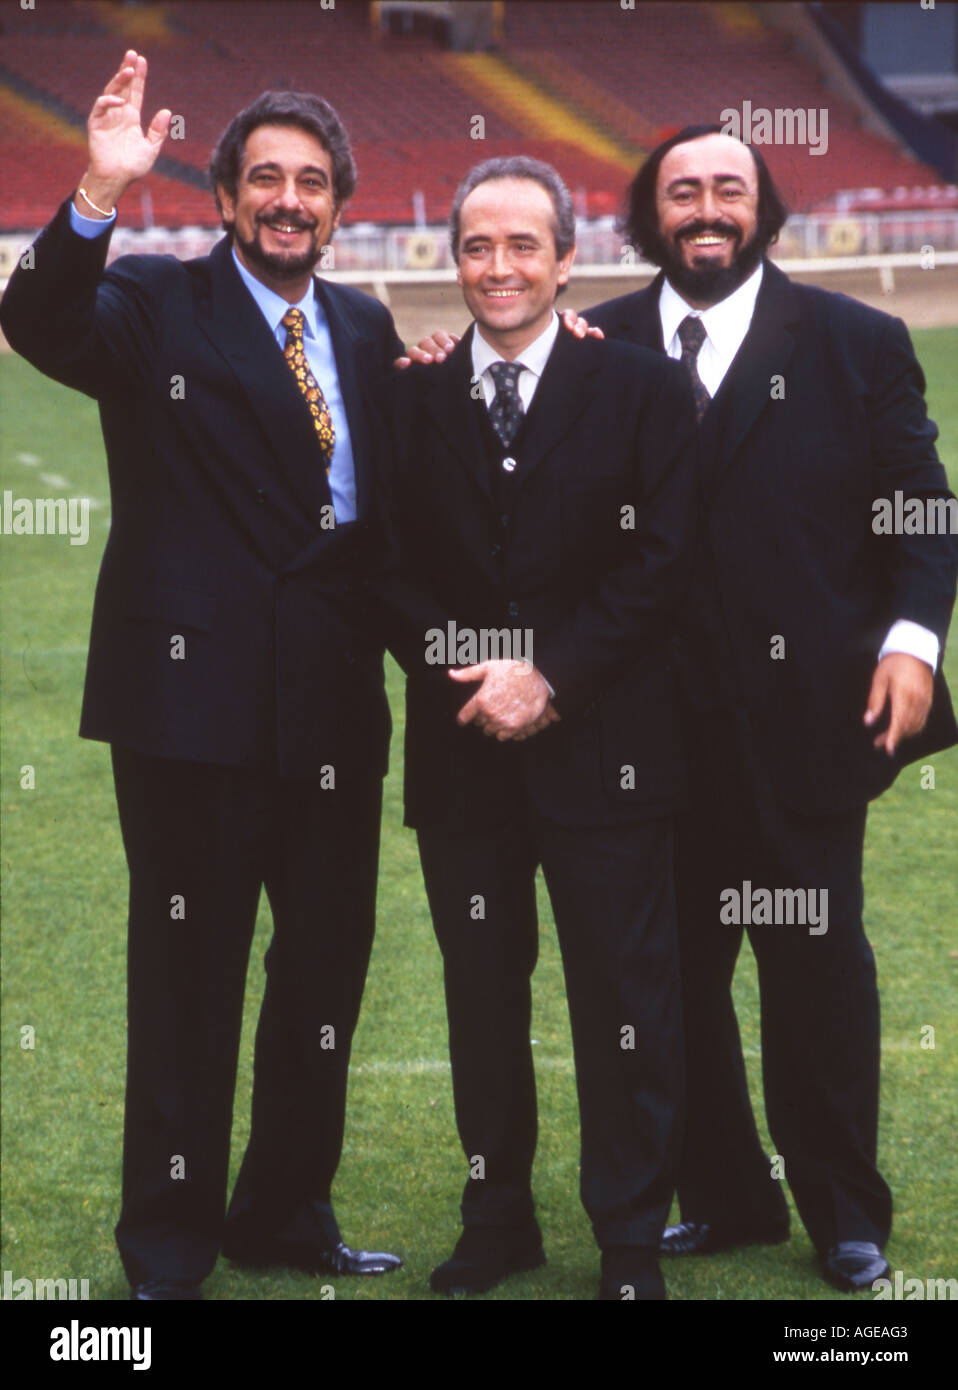 ¿Cuánto mide Plácido Domingo? - Altura The-three-tenors-from-left-placido-domingo-jose-carreras-and-luciano-AGEAG3